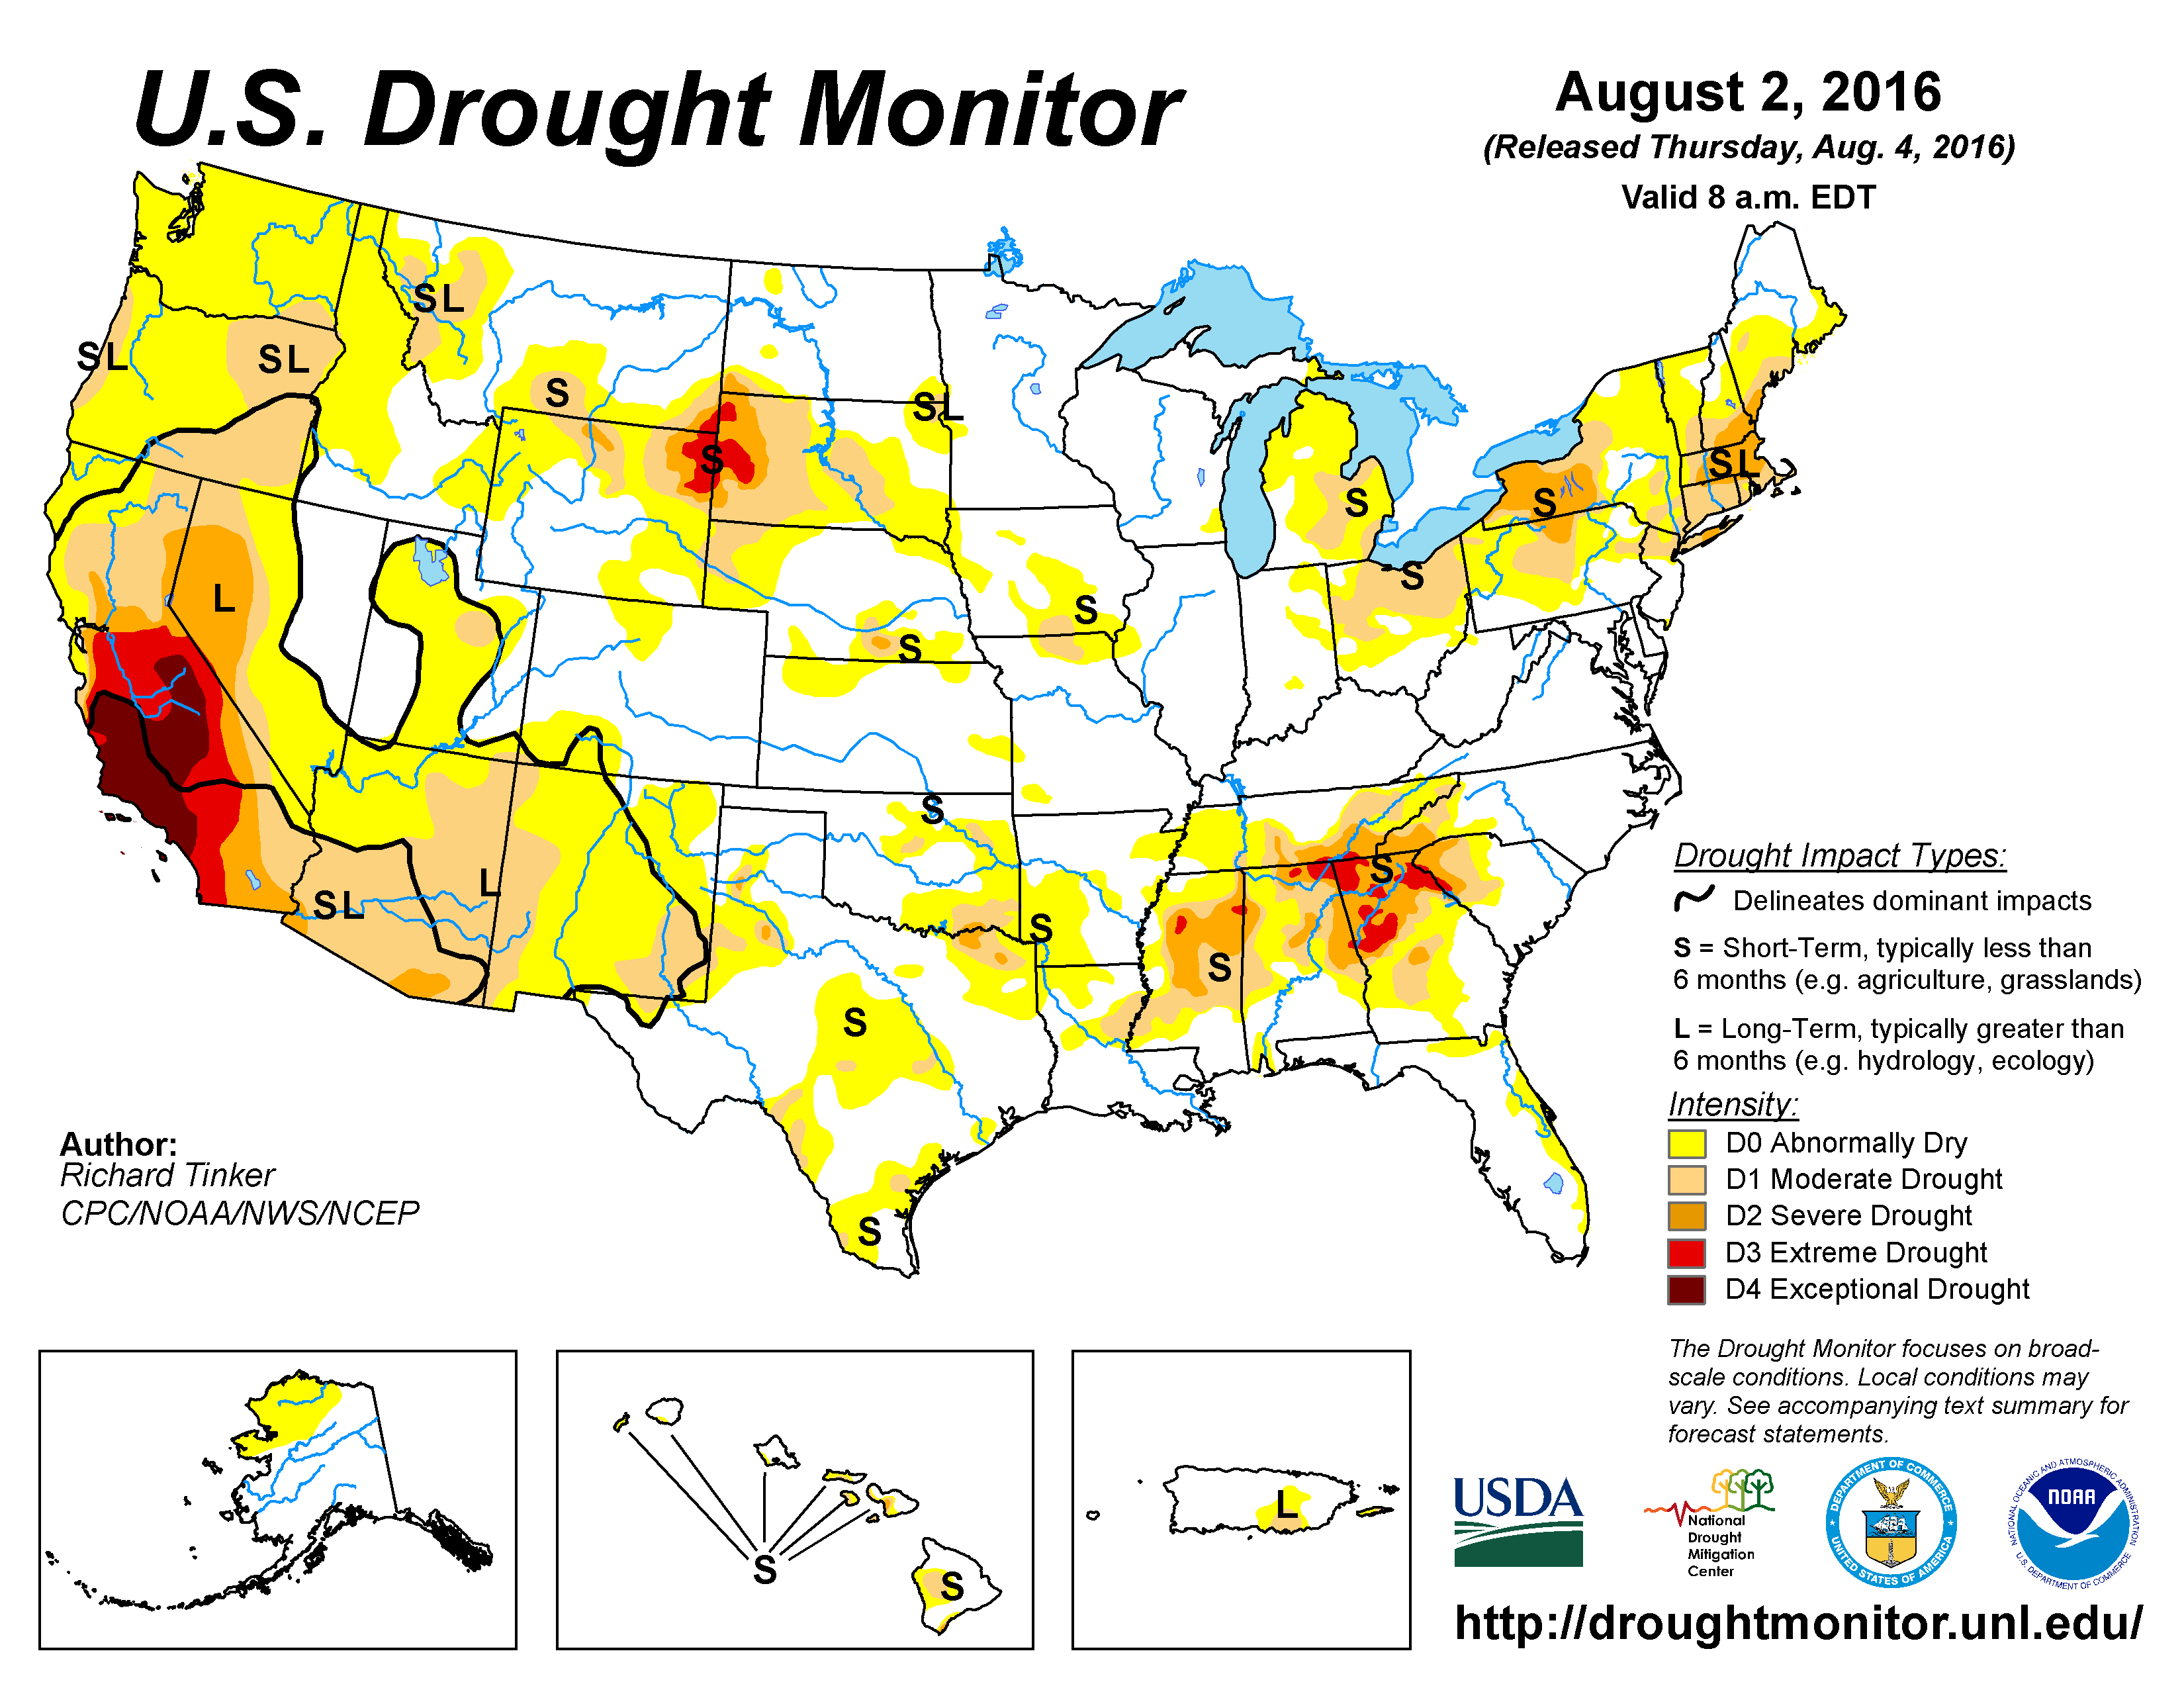 the u s drought monitor drought map valid august 2 2016